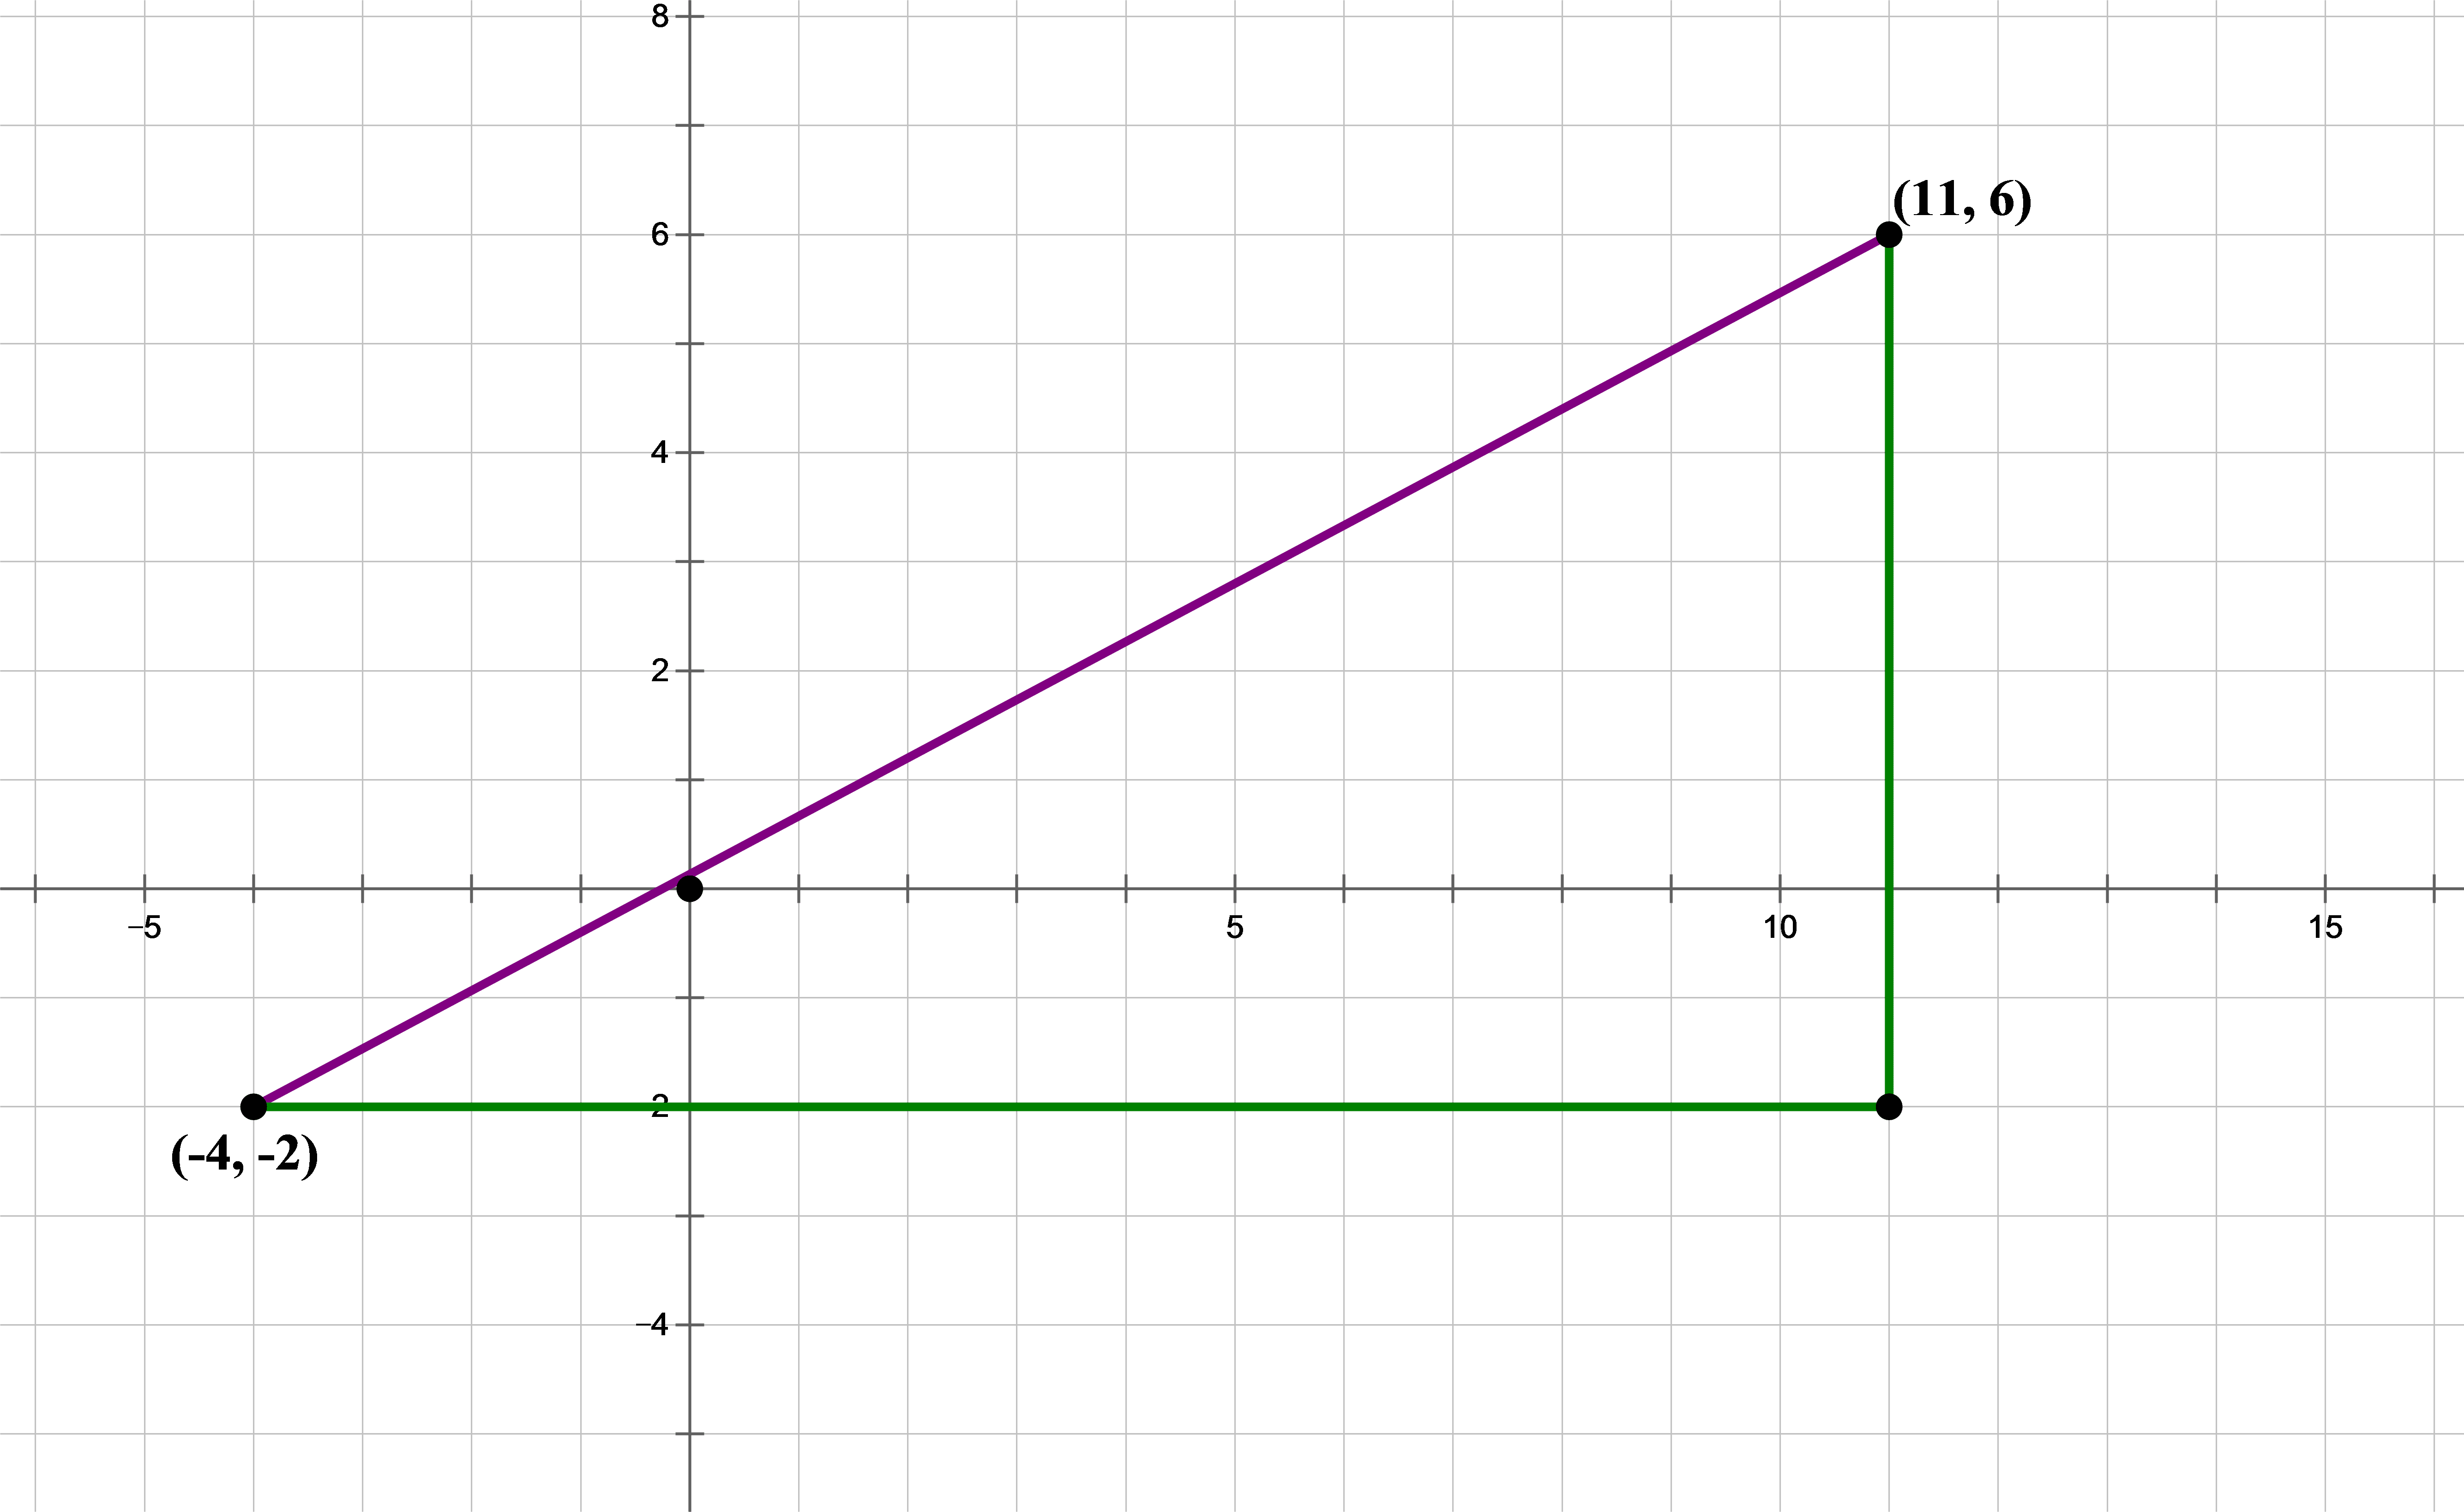 The Purple Line Is The Actual Distance We Want To Find One Very Important  Trick To Know: When You Need To Find A Diagonal Distance In The Xy Plane,